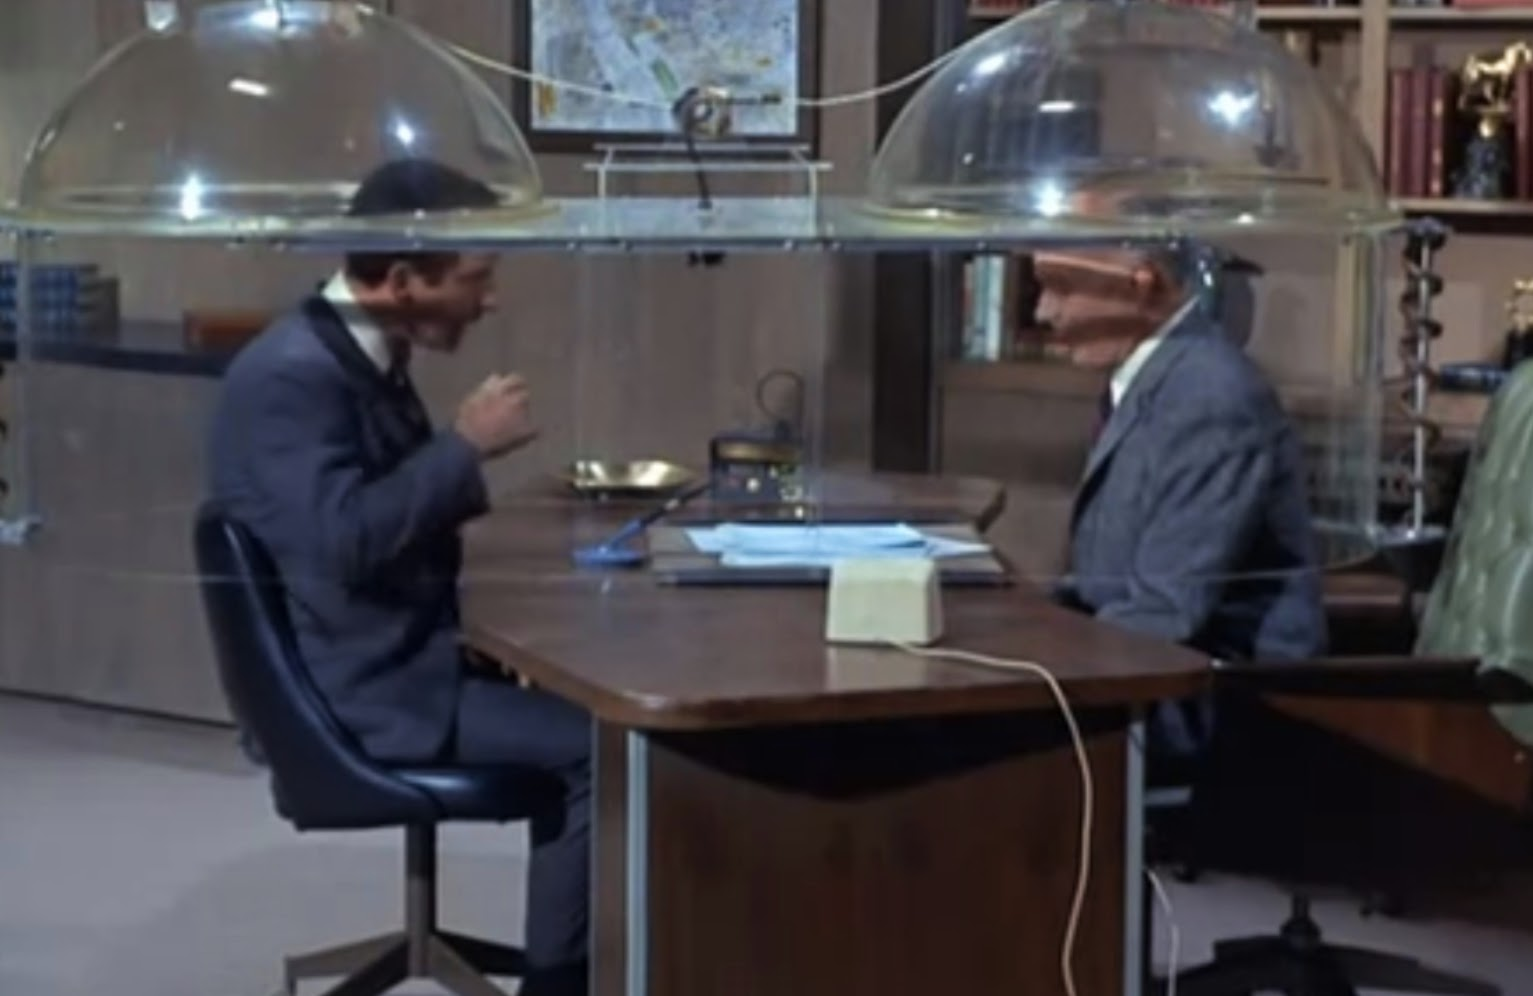 Get Smart's Cone of Silence